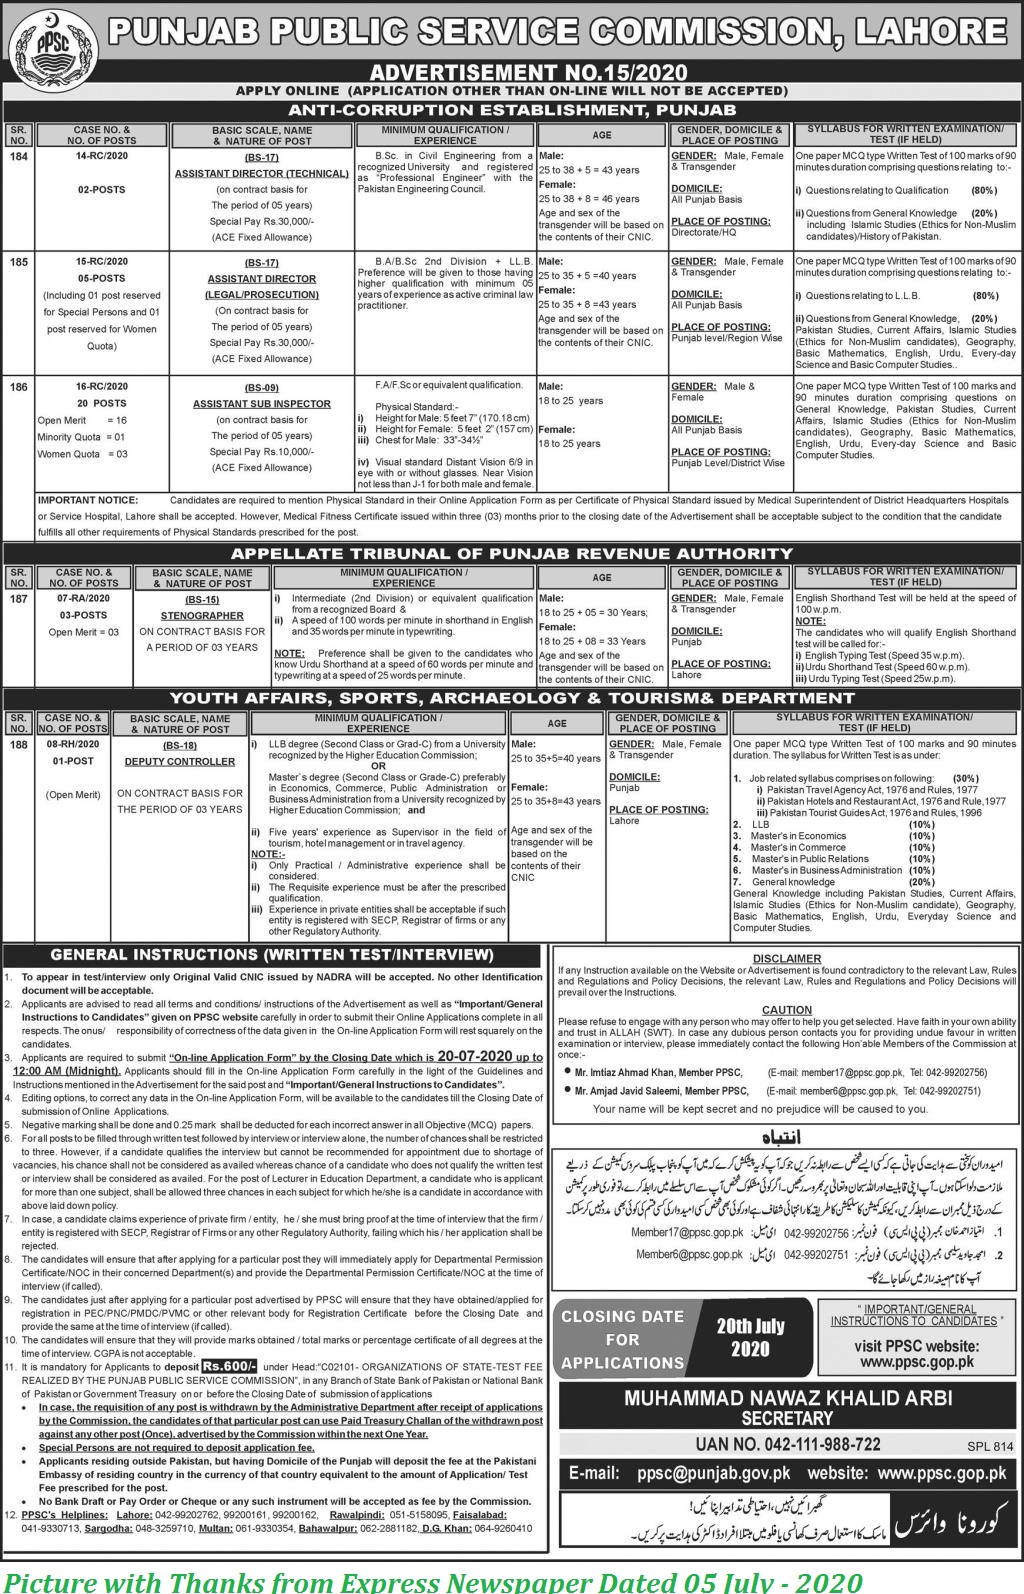 PPSC Jobs 2020 - Latest PPSC Jobs July 2020 Advertisement No. 15/2020 PPSC Latest Jobs 2020 Advertisement